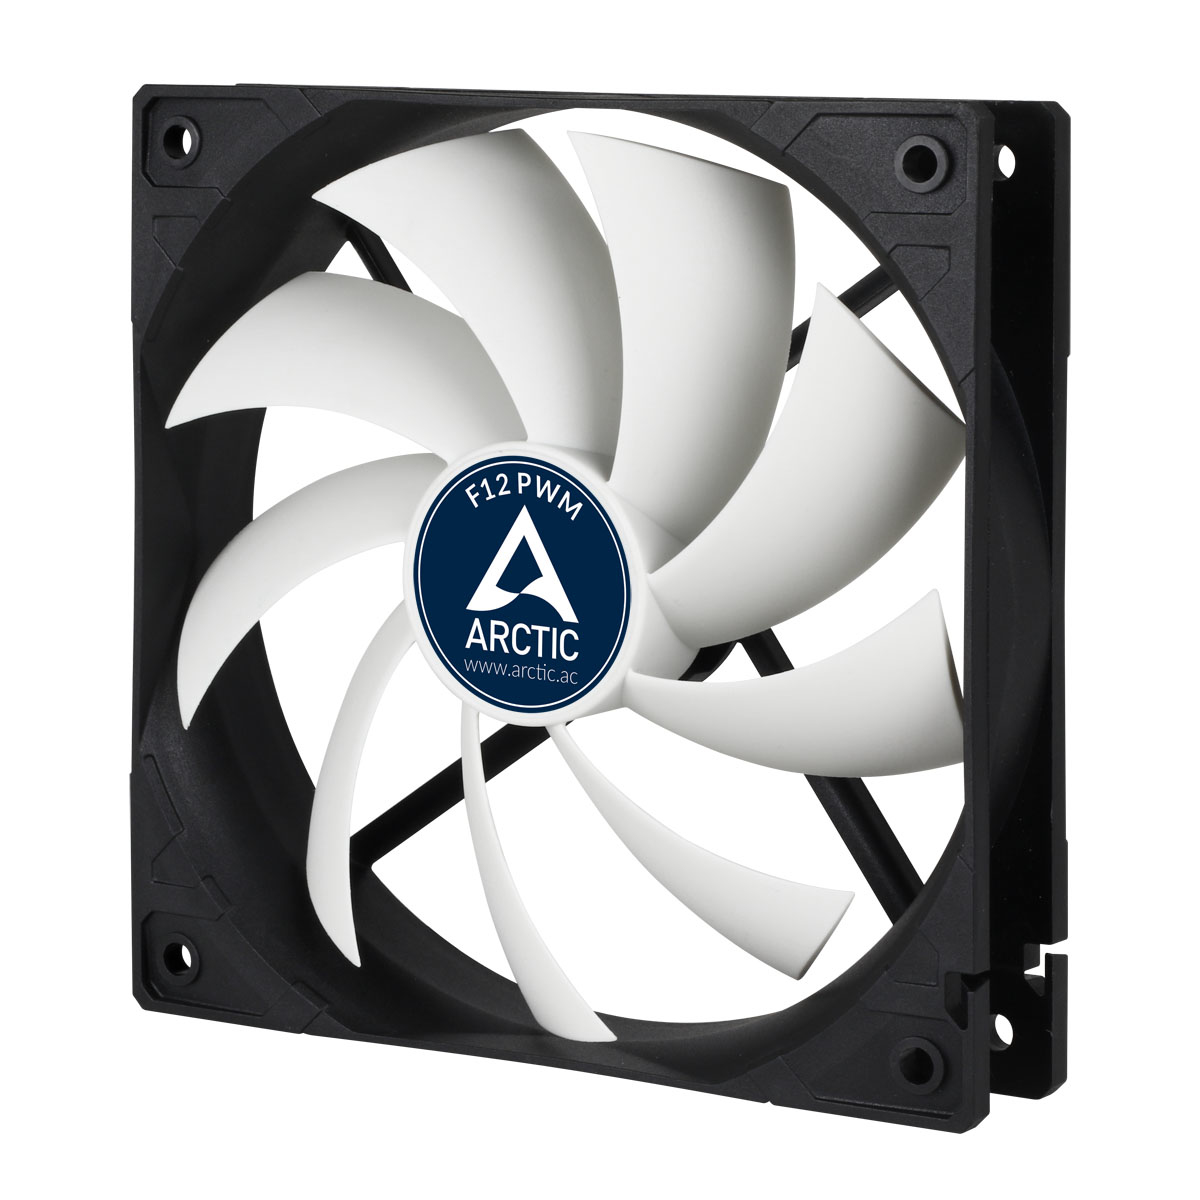 ARCTIC F12 PWM 4-Pin PWM fan with standard case